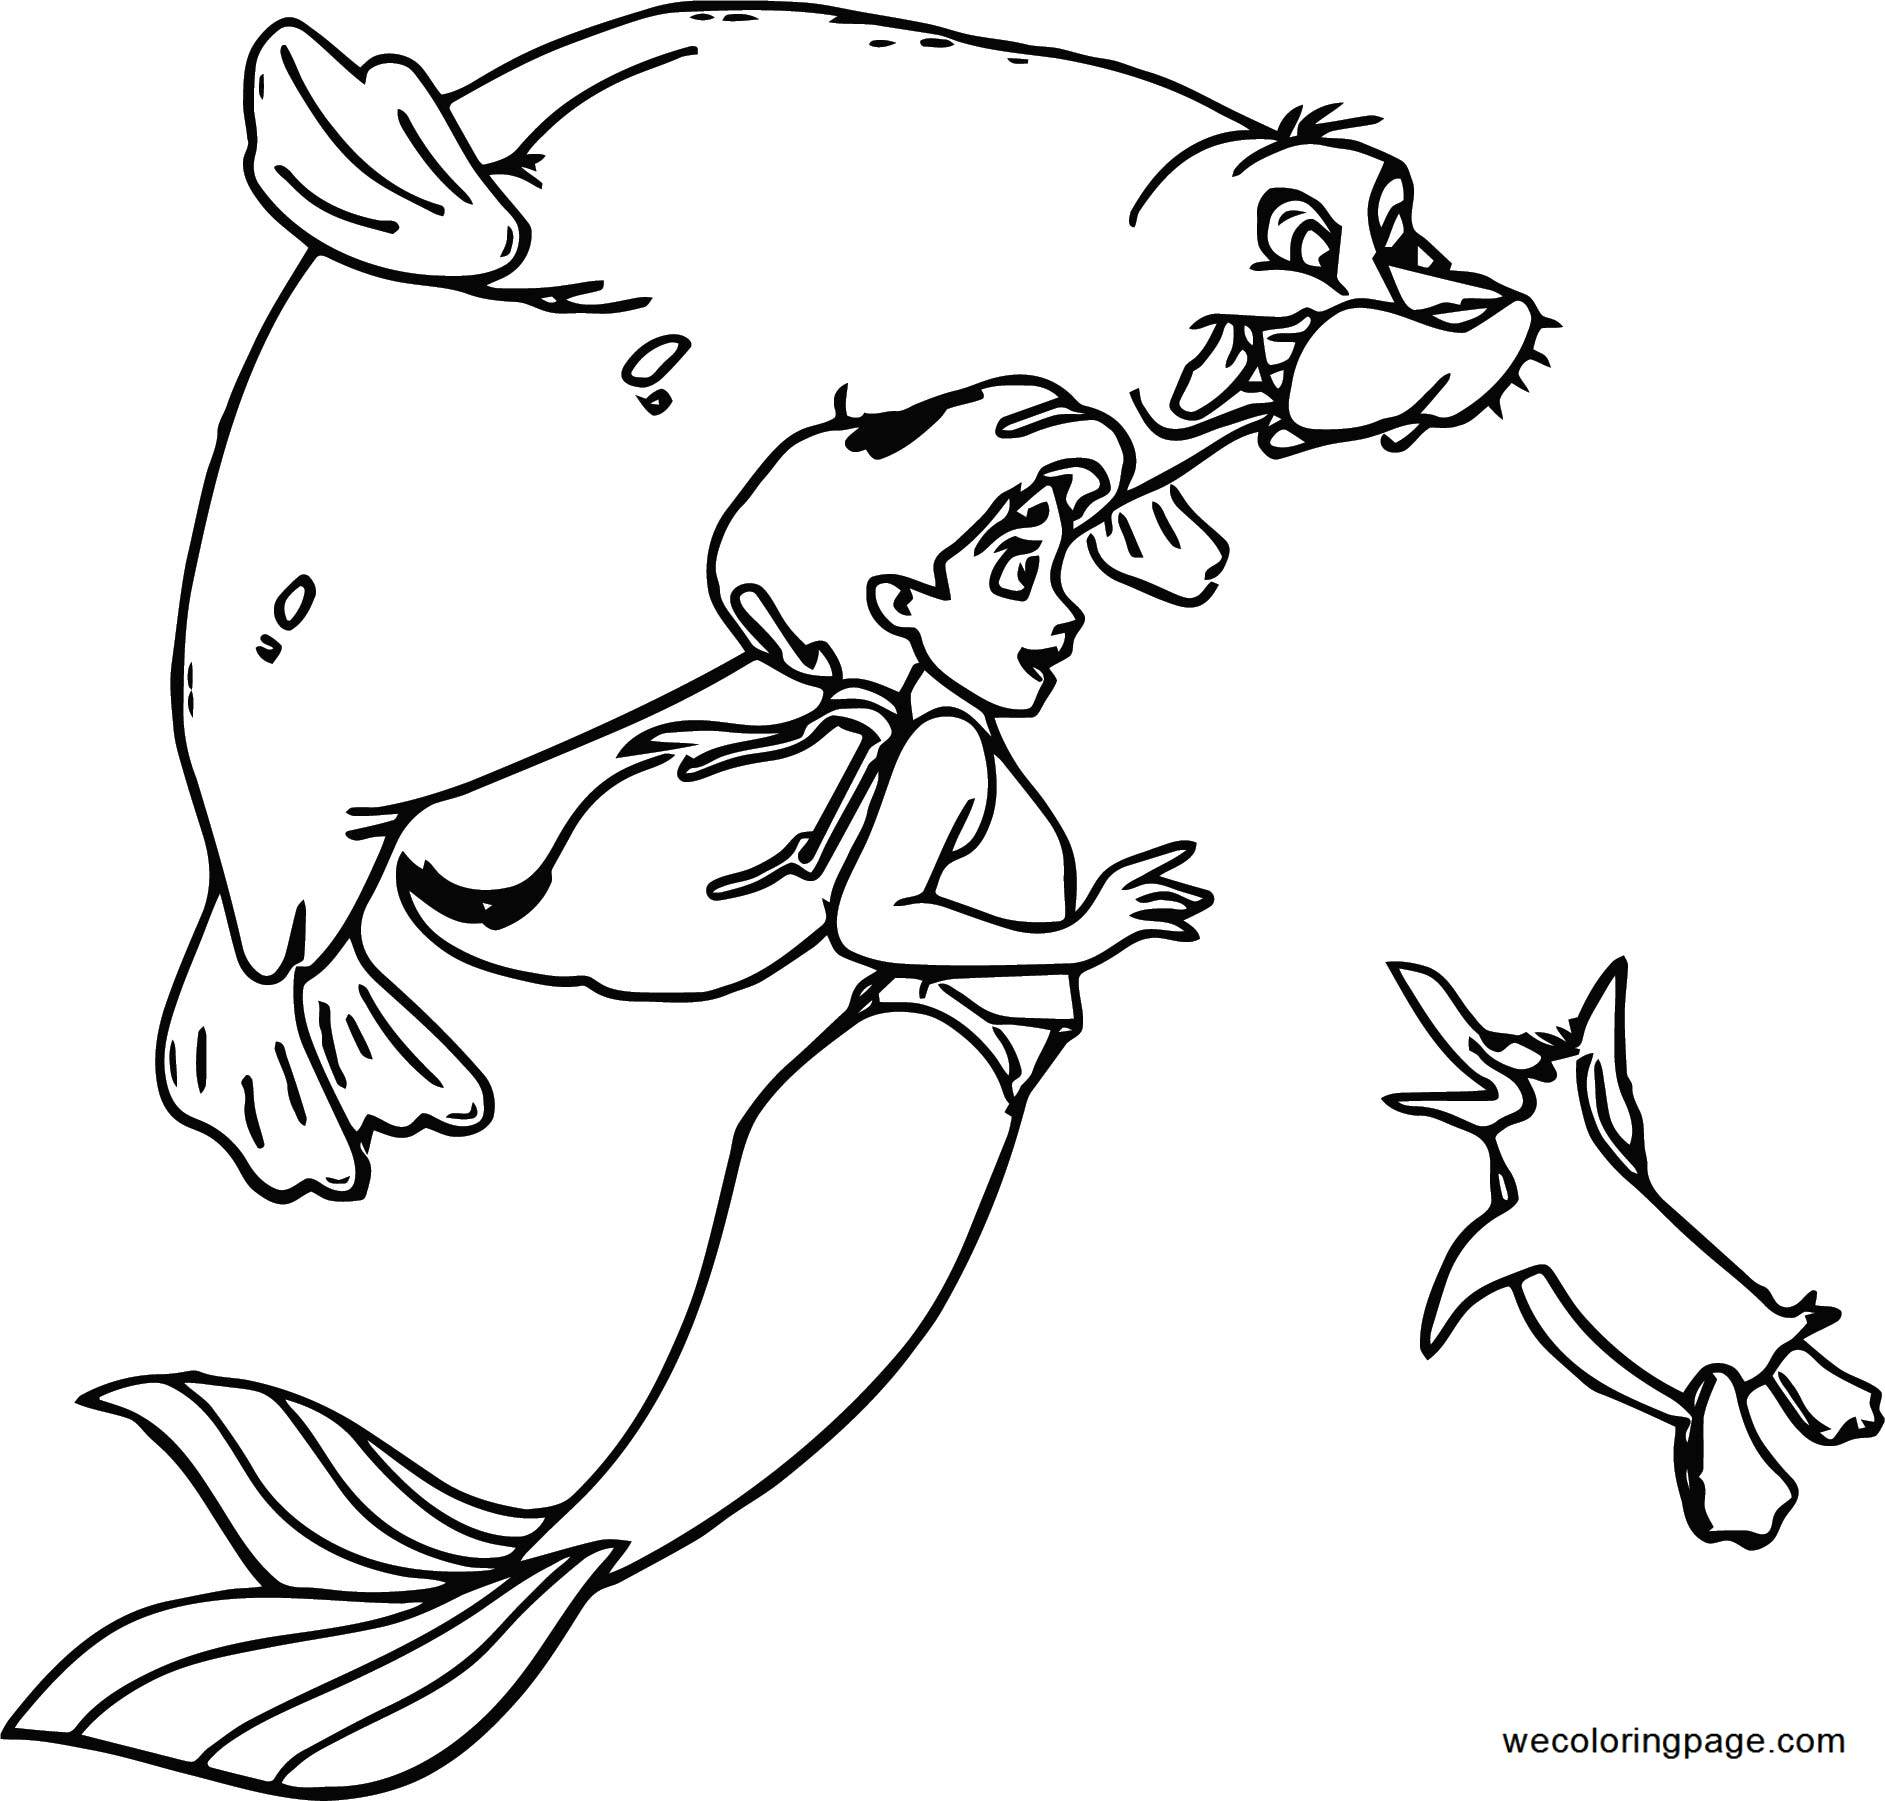 Disney The Little Mermaid 2 Return to the Sea Coloring Page 25